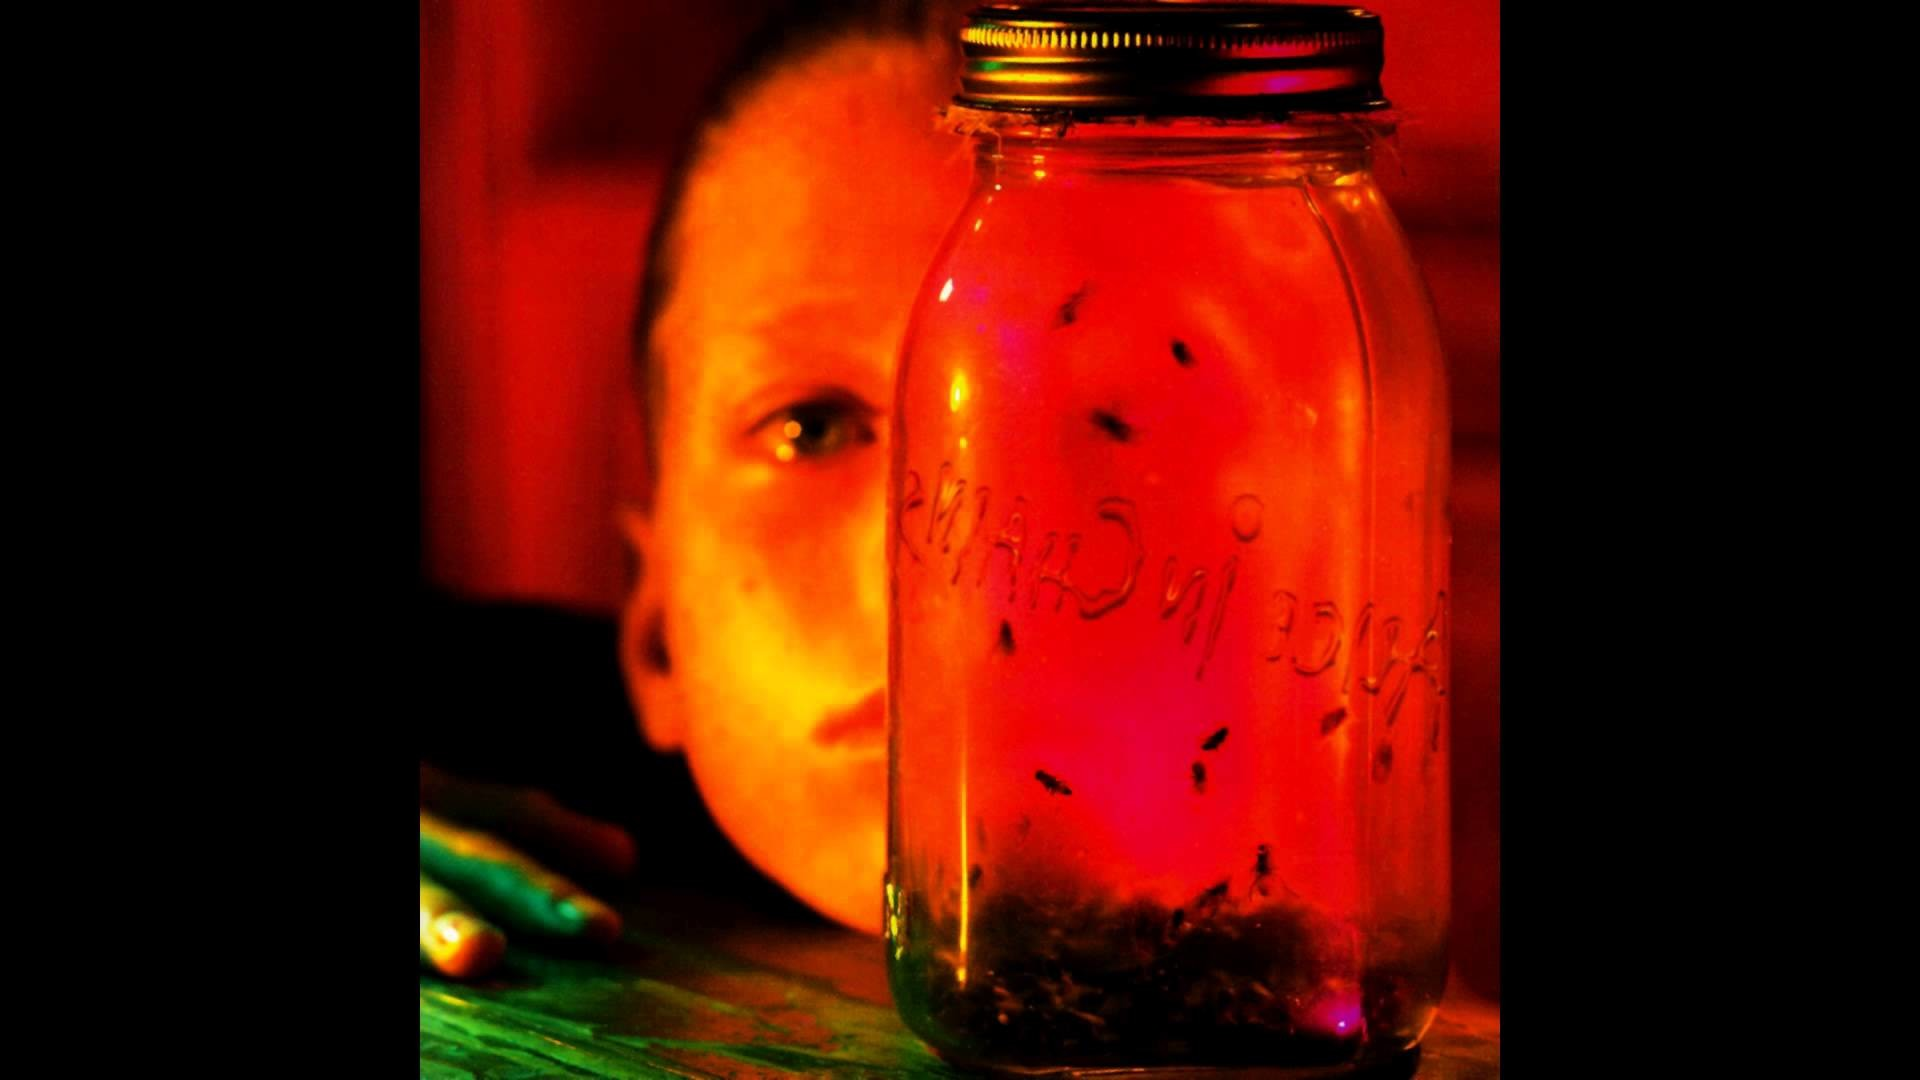 Alice in Chains – Jar of Flies (Full Album). My all time favorite album.  Shows their true depth and diversity. Can't be pigeonholed as grunge or  metal.